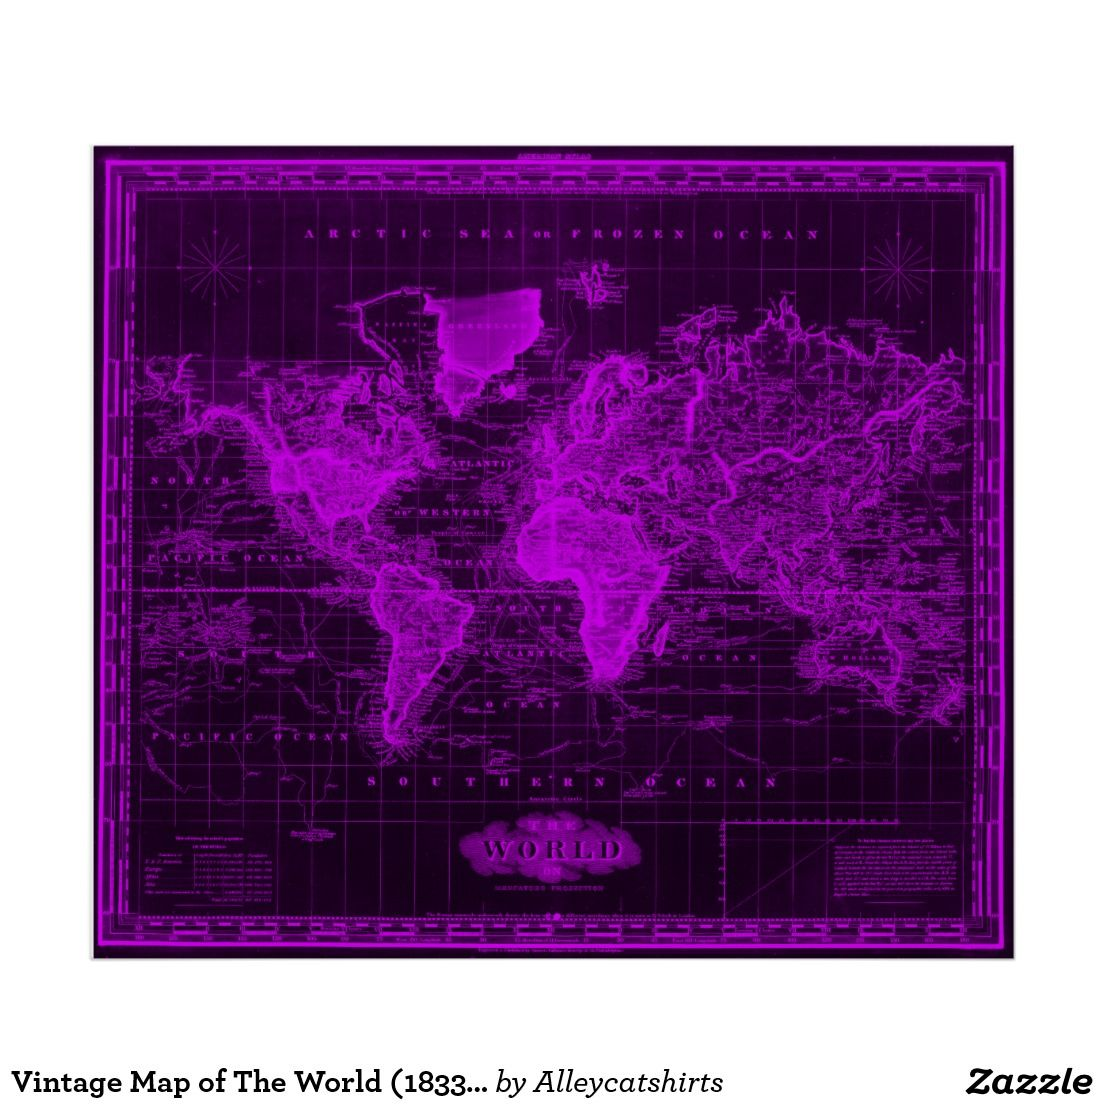 Vintage map of the world 1833 black purple poster colorful vintage map of the world black purple poster gumiabroncs Image collections